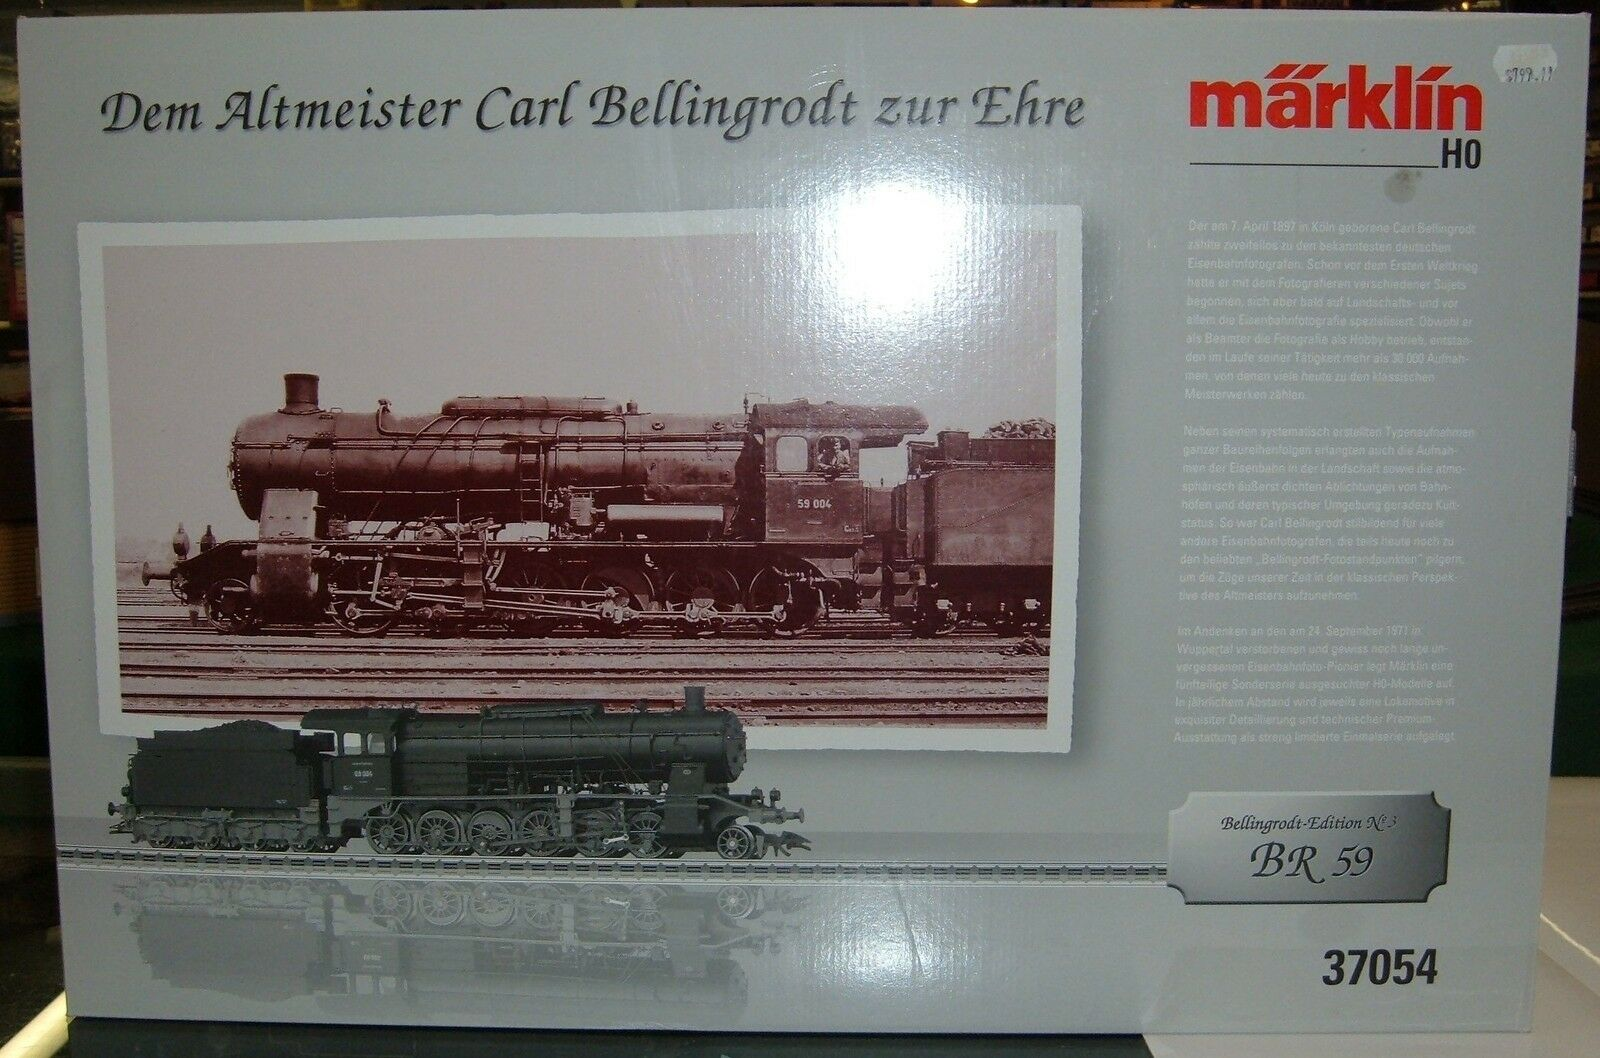 Marklin HO 37054 German State Railway Company DRG Class 59 Freight Locomotive